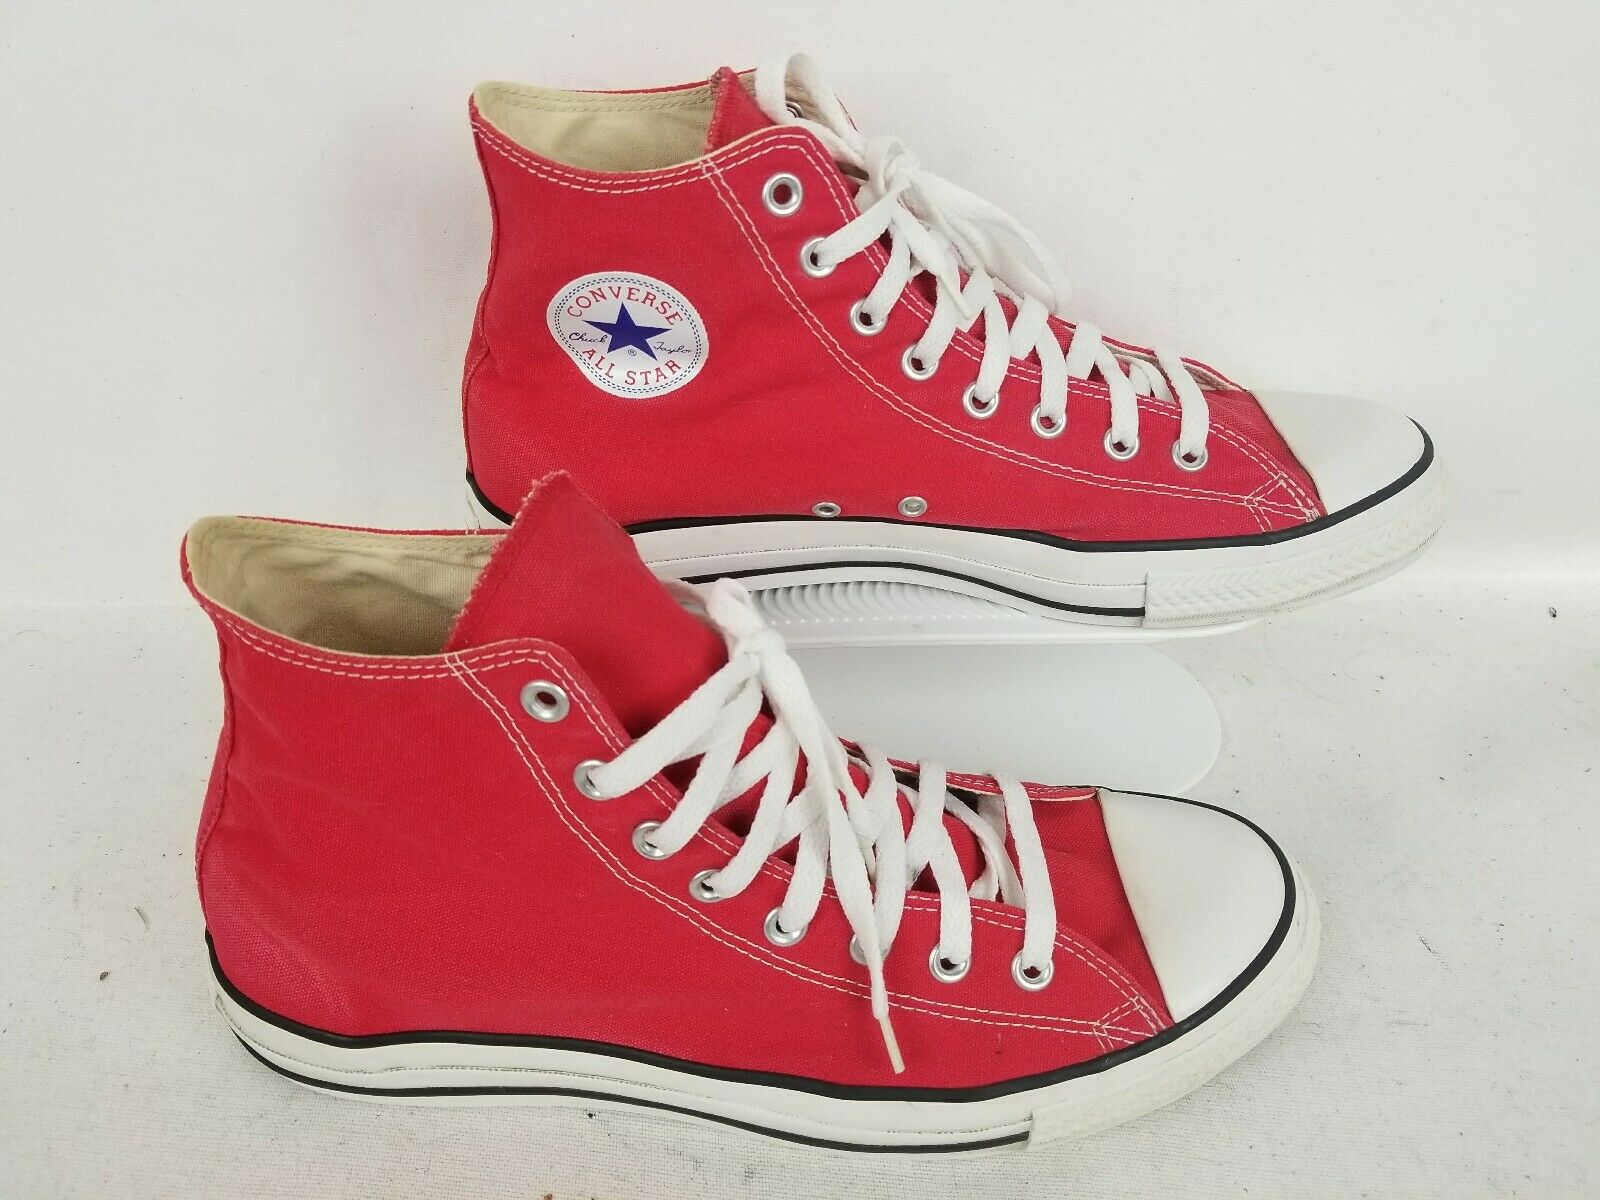 Converse Chuck Taylor All Star High Top paniers Chaussures Rouges Taille 12